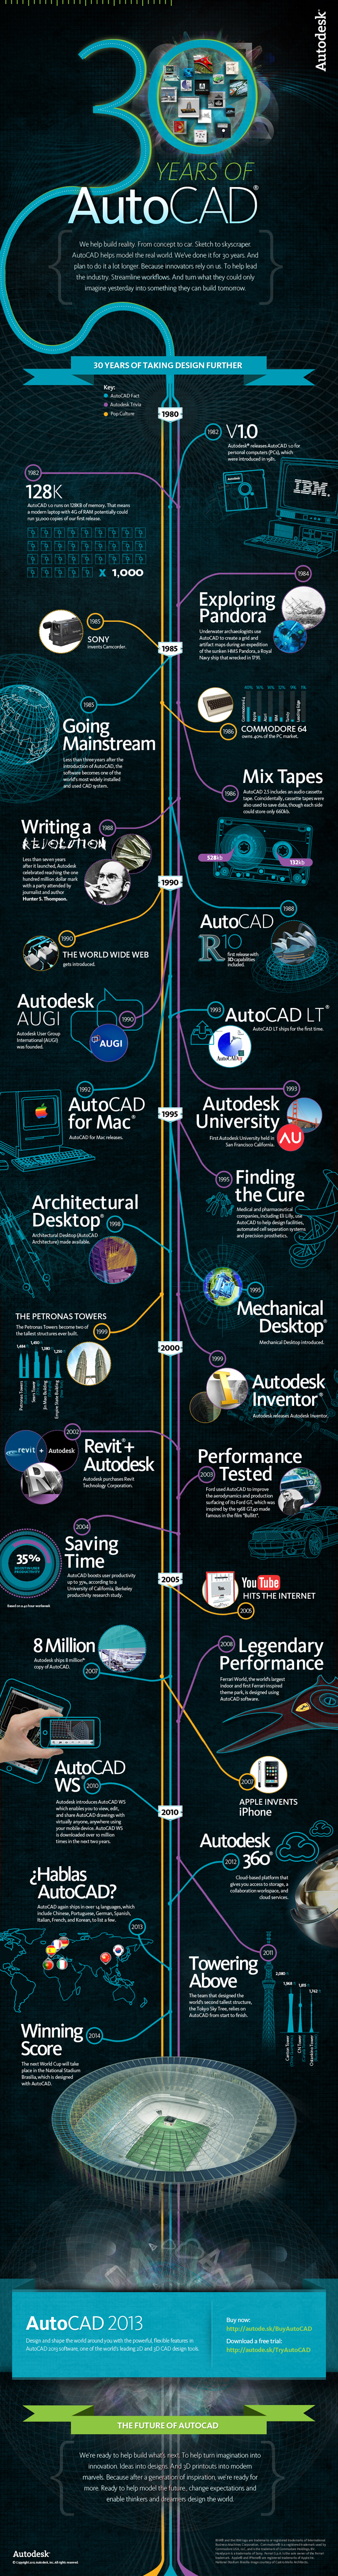 30 Years of AutoCAD